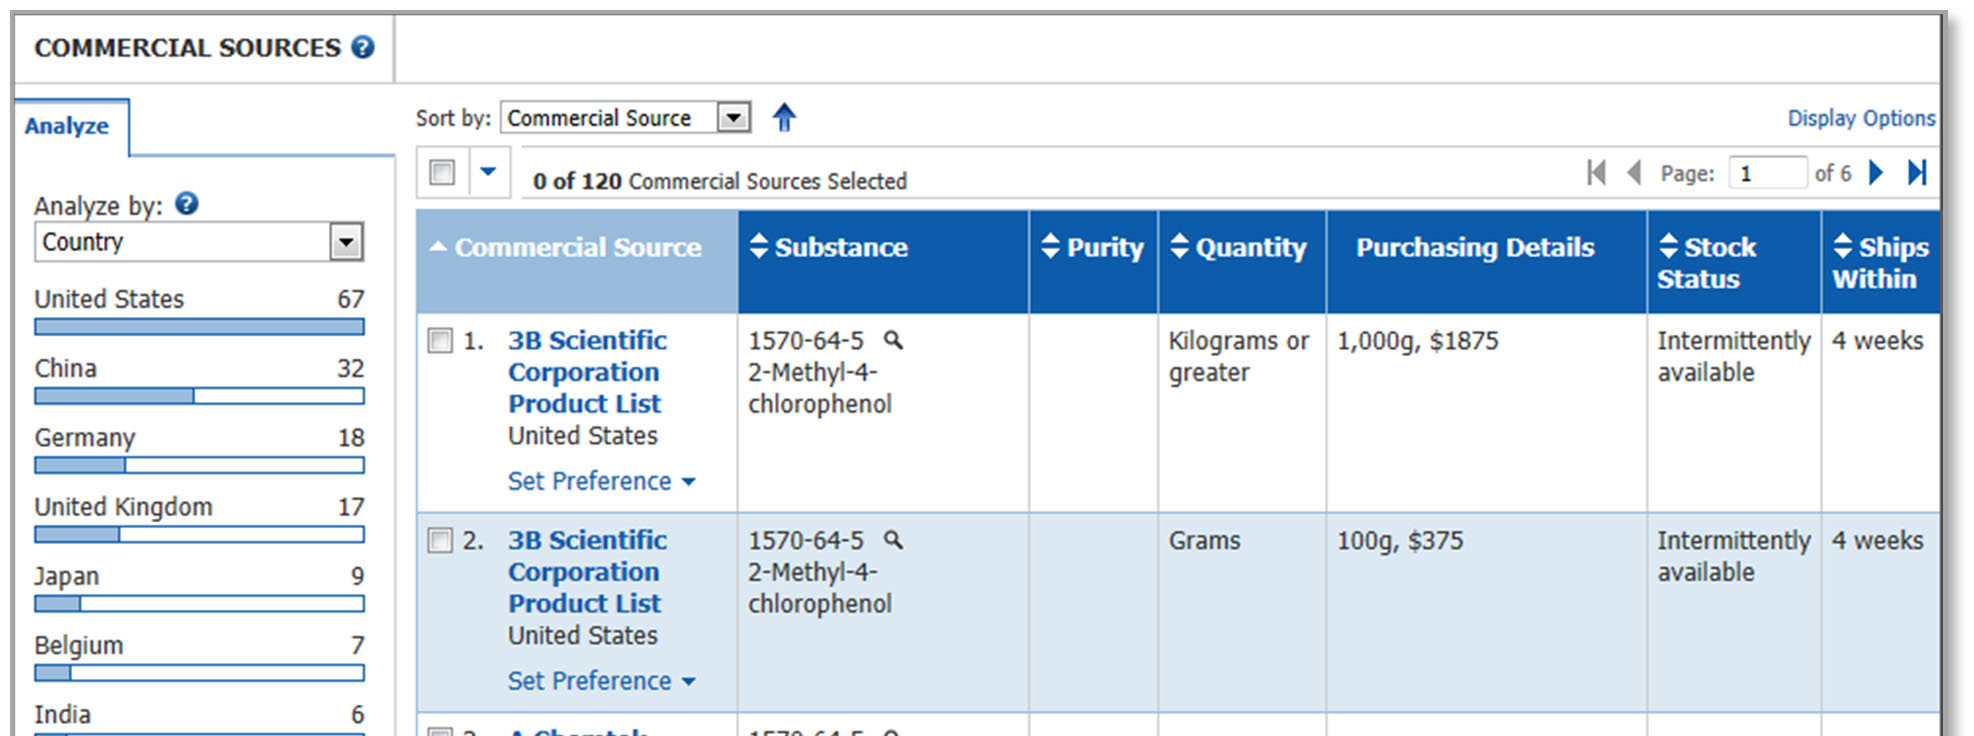 See Commercial Sources Information SciFinder returns a list of commercial sources for the substance.